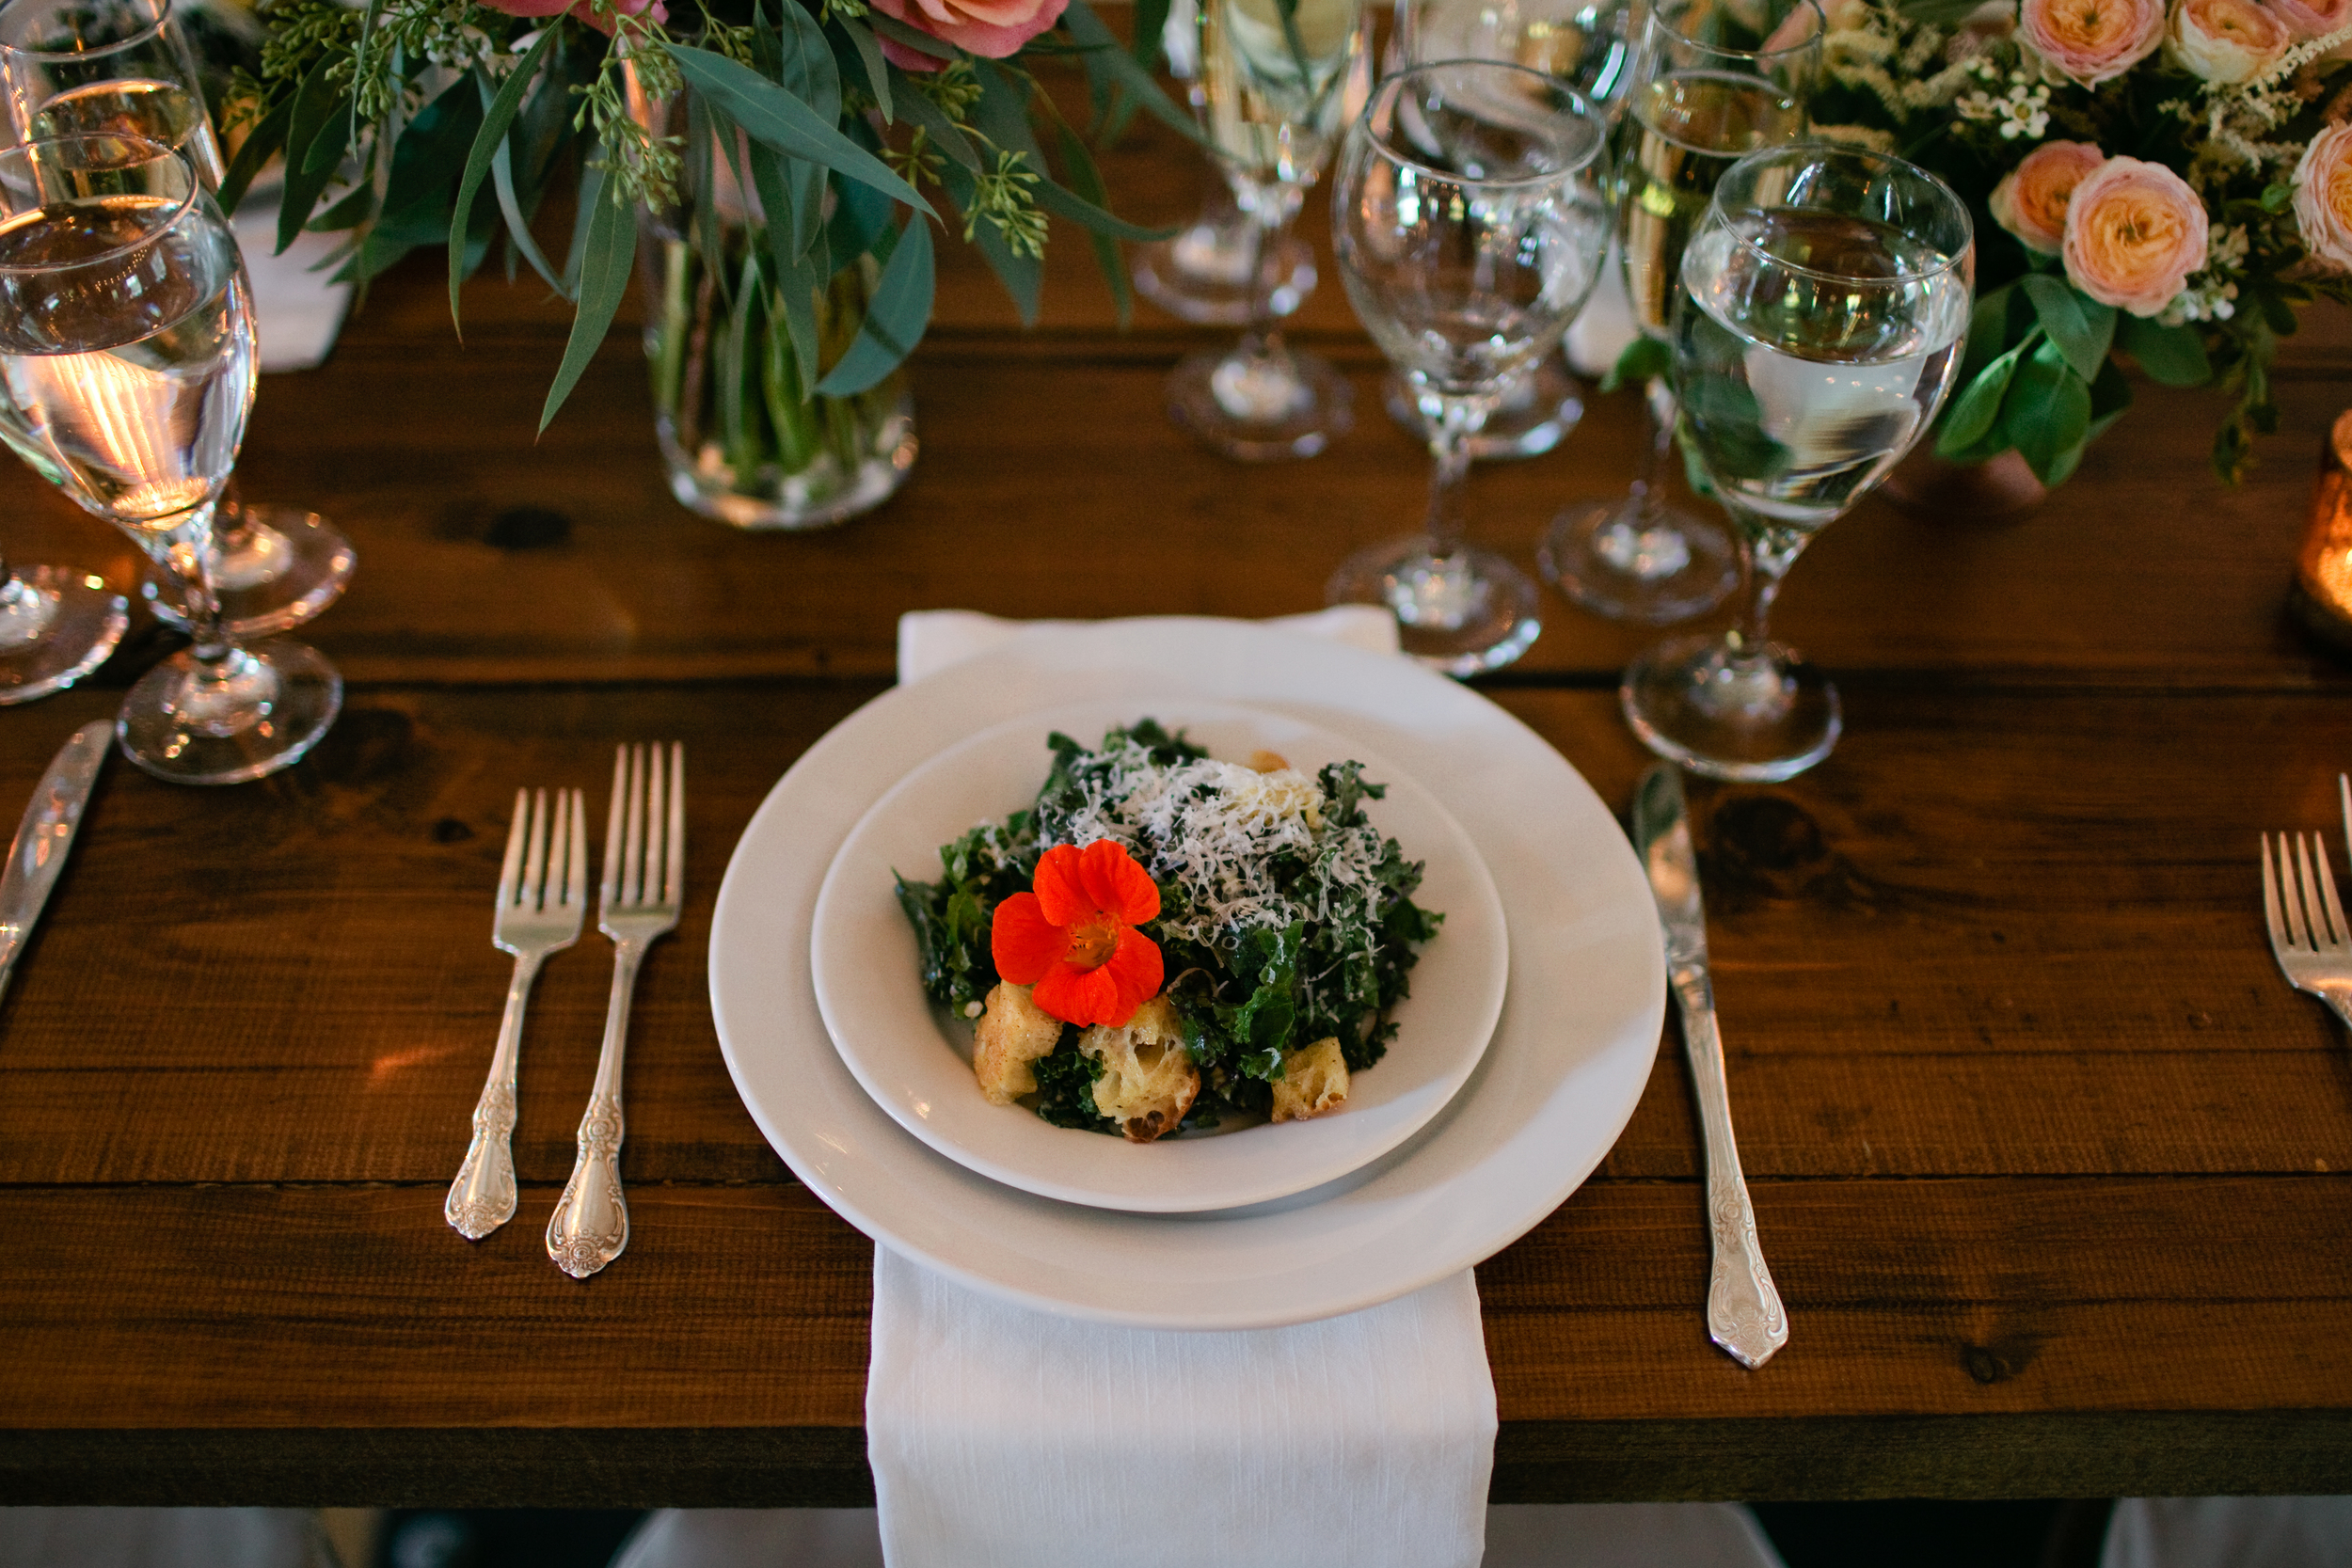 Kale Caesar with Olive Oil Croutons and Lemon  | Trillium Caterers